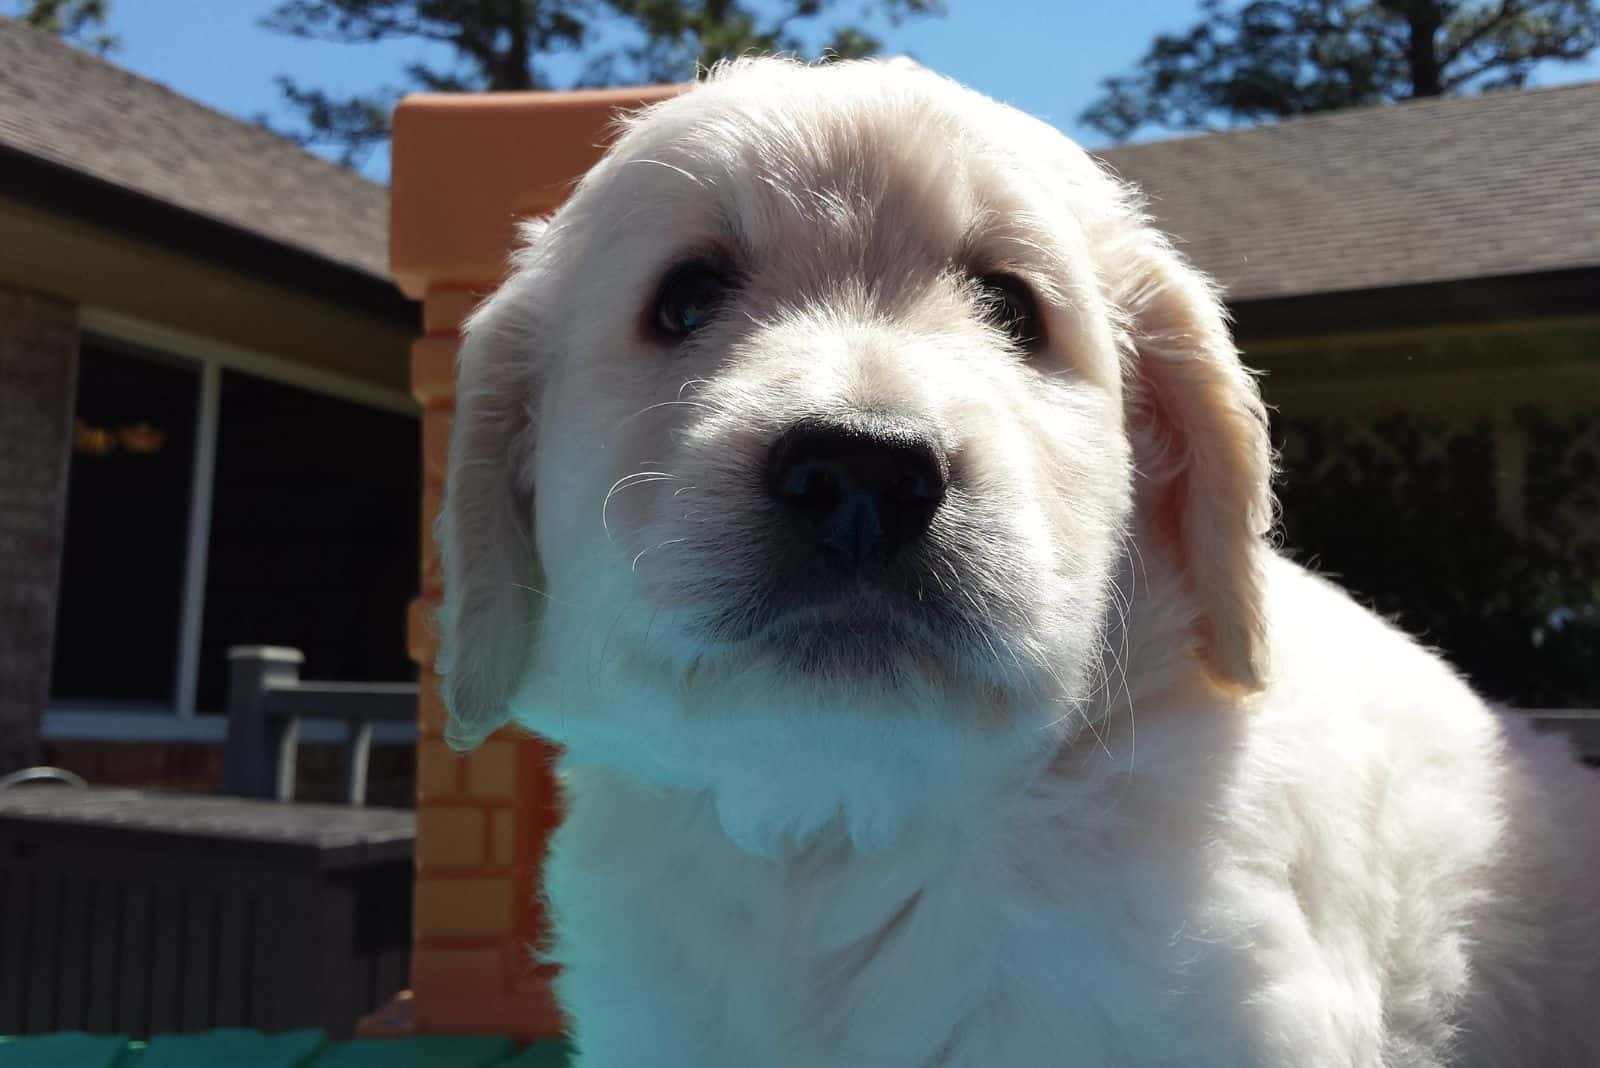 cream color goldendoodle puppy standing outdoors in close up image